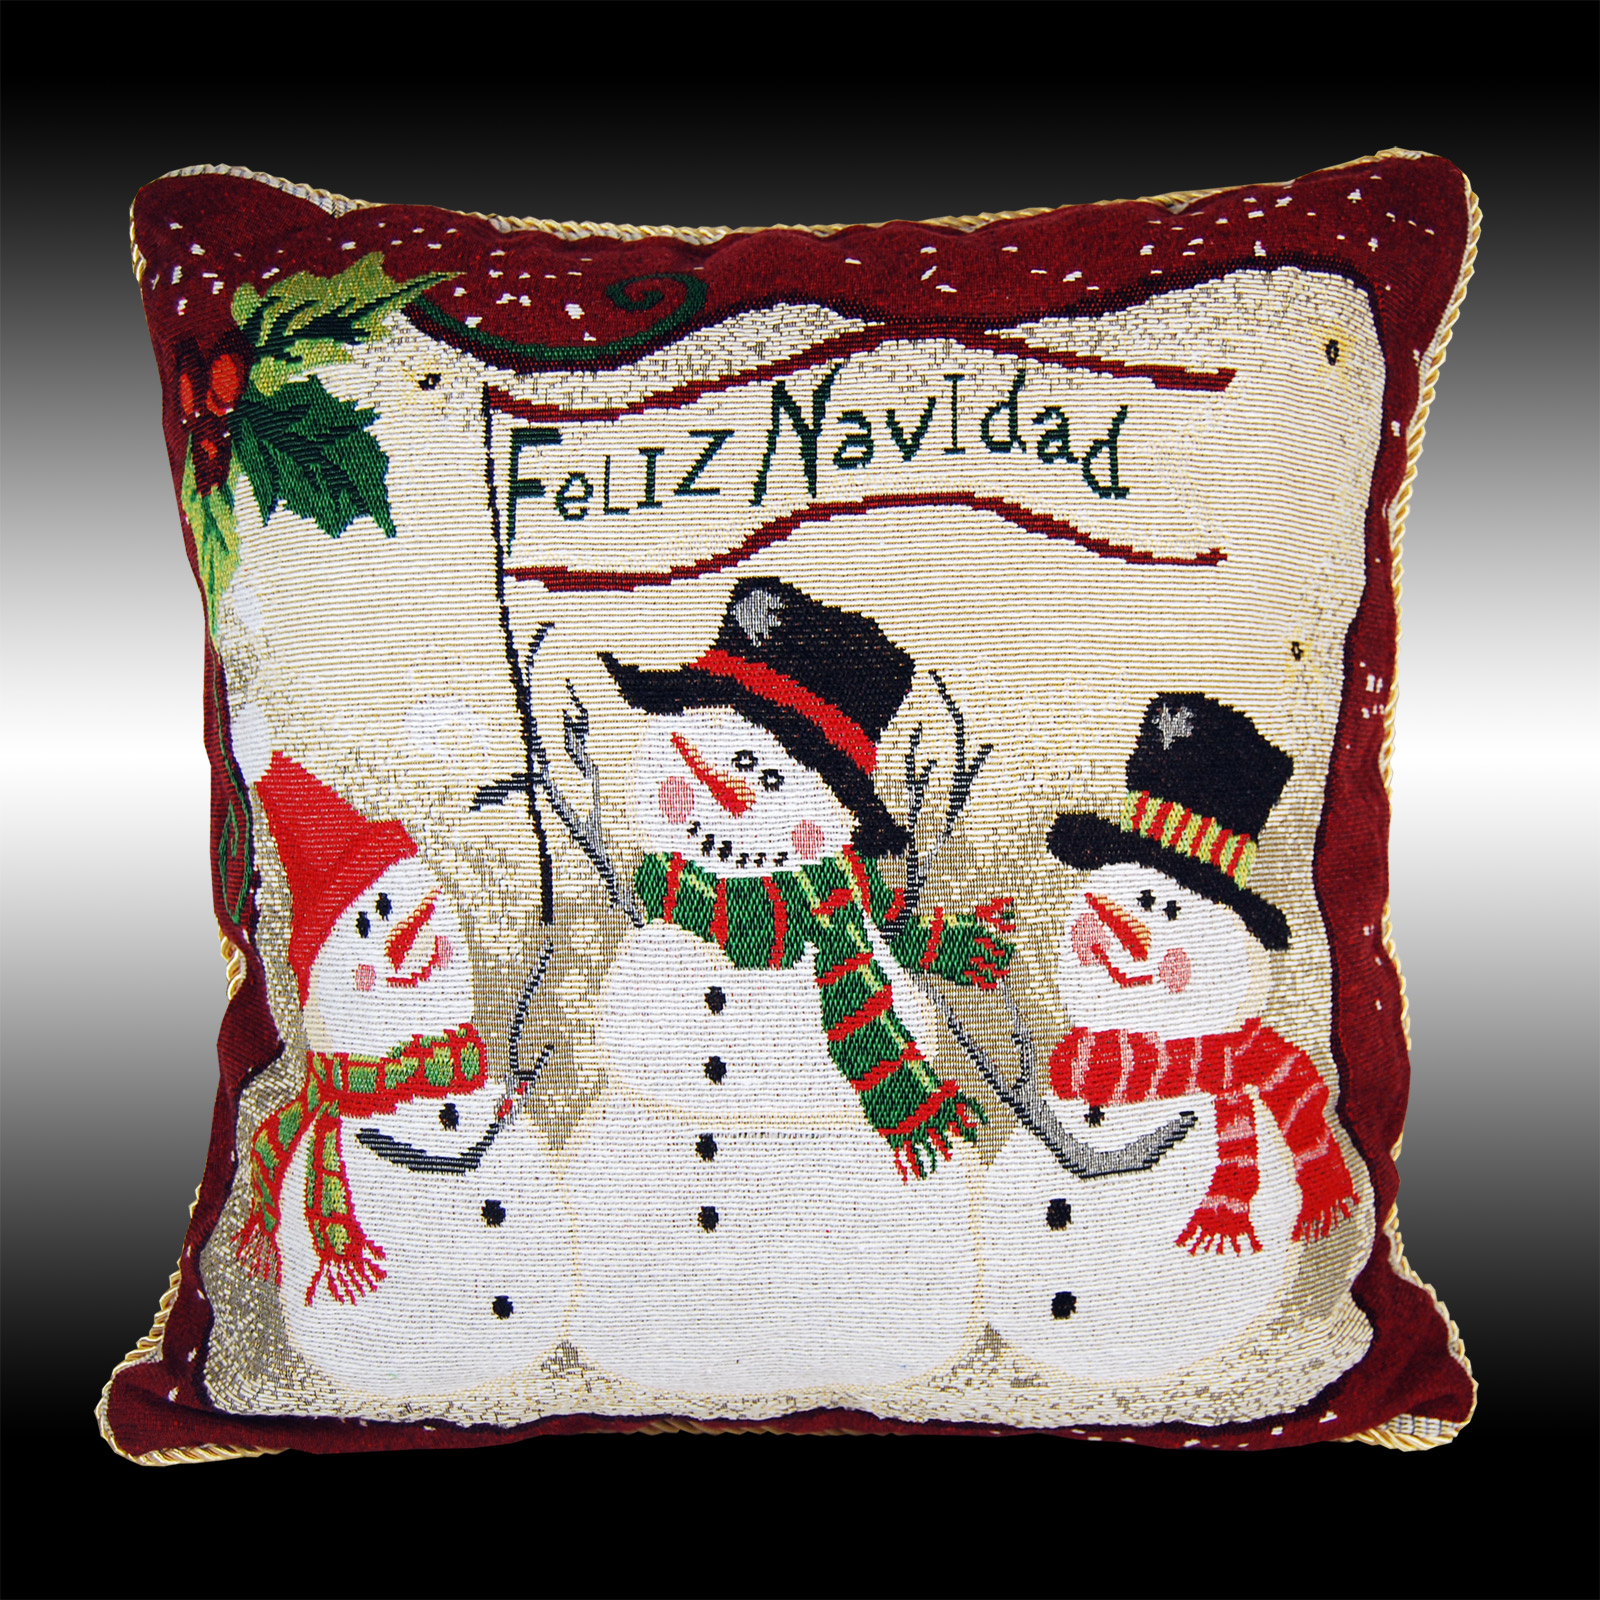 Tapestry pillowcases with a Christmas theme: actual offers from the manufacturer